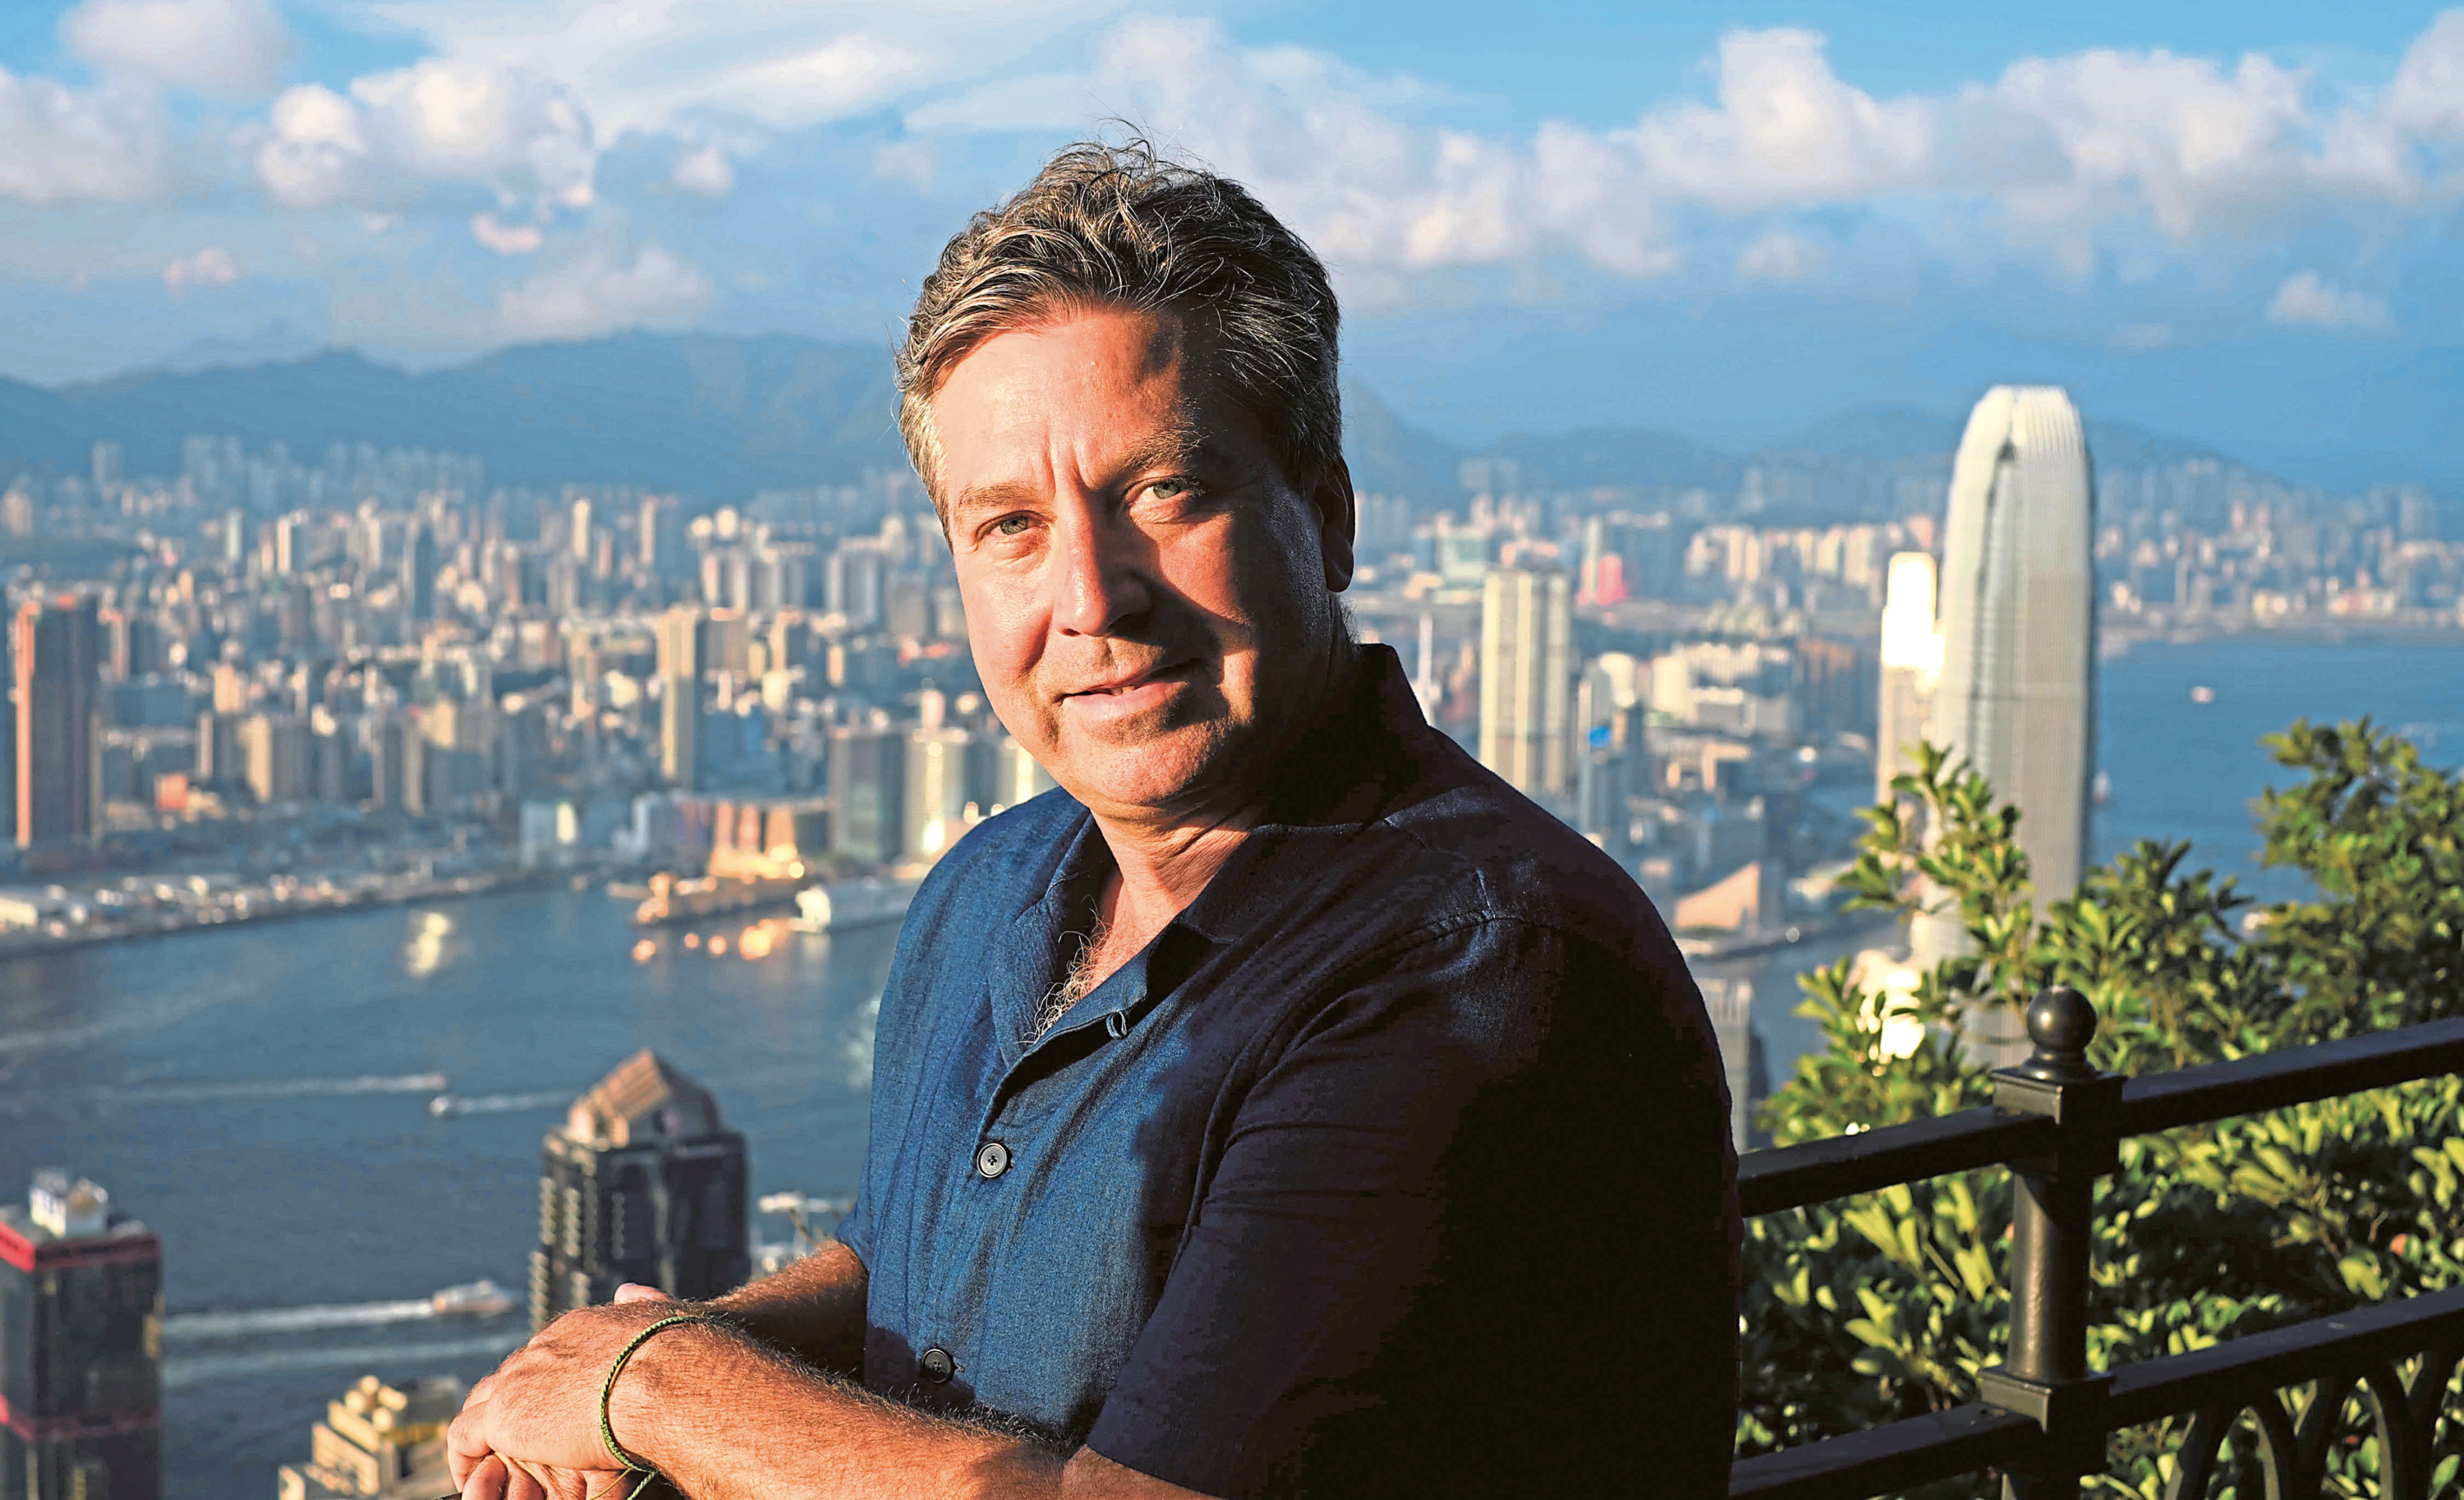 John Torode will feature at this year's event